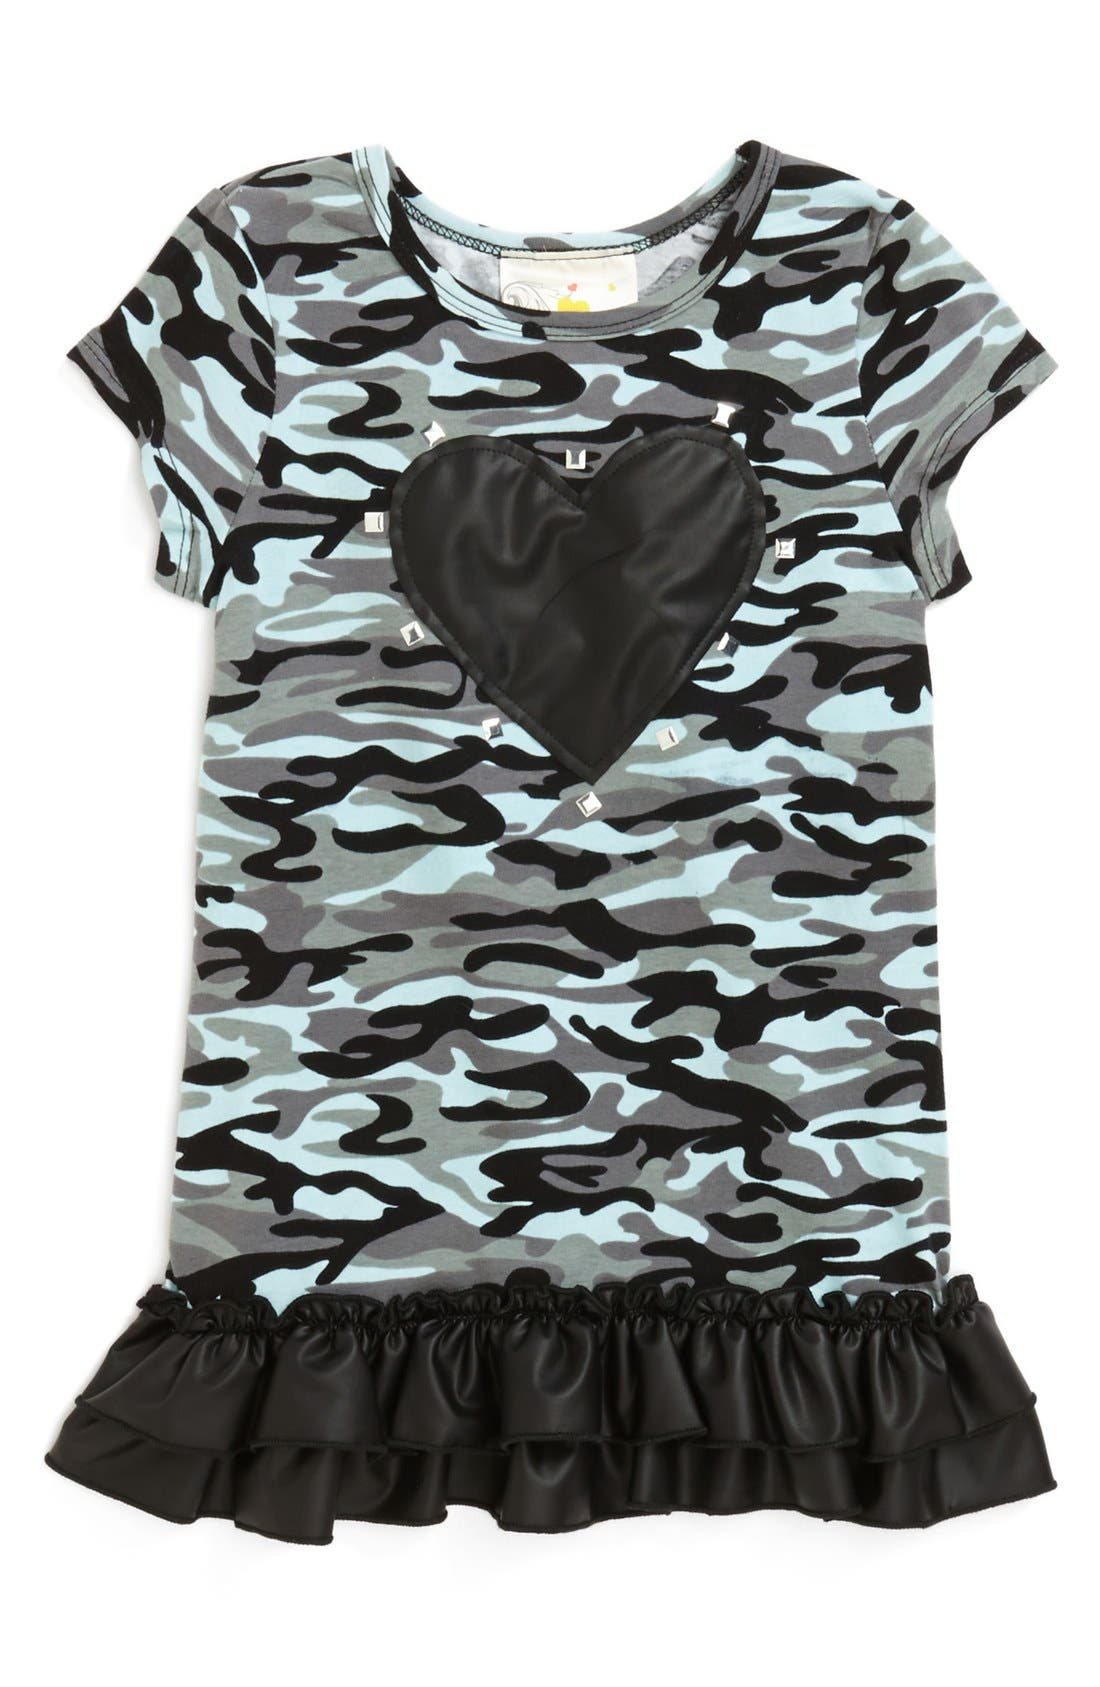 Main Image - Jenna & Jessie Camo Print Tee (Little Girls)